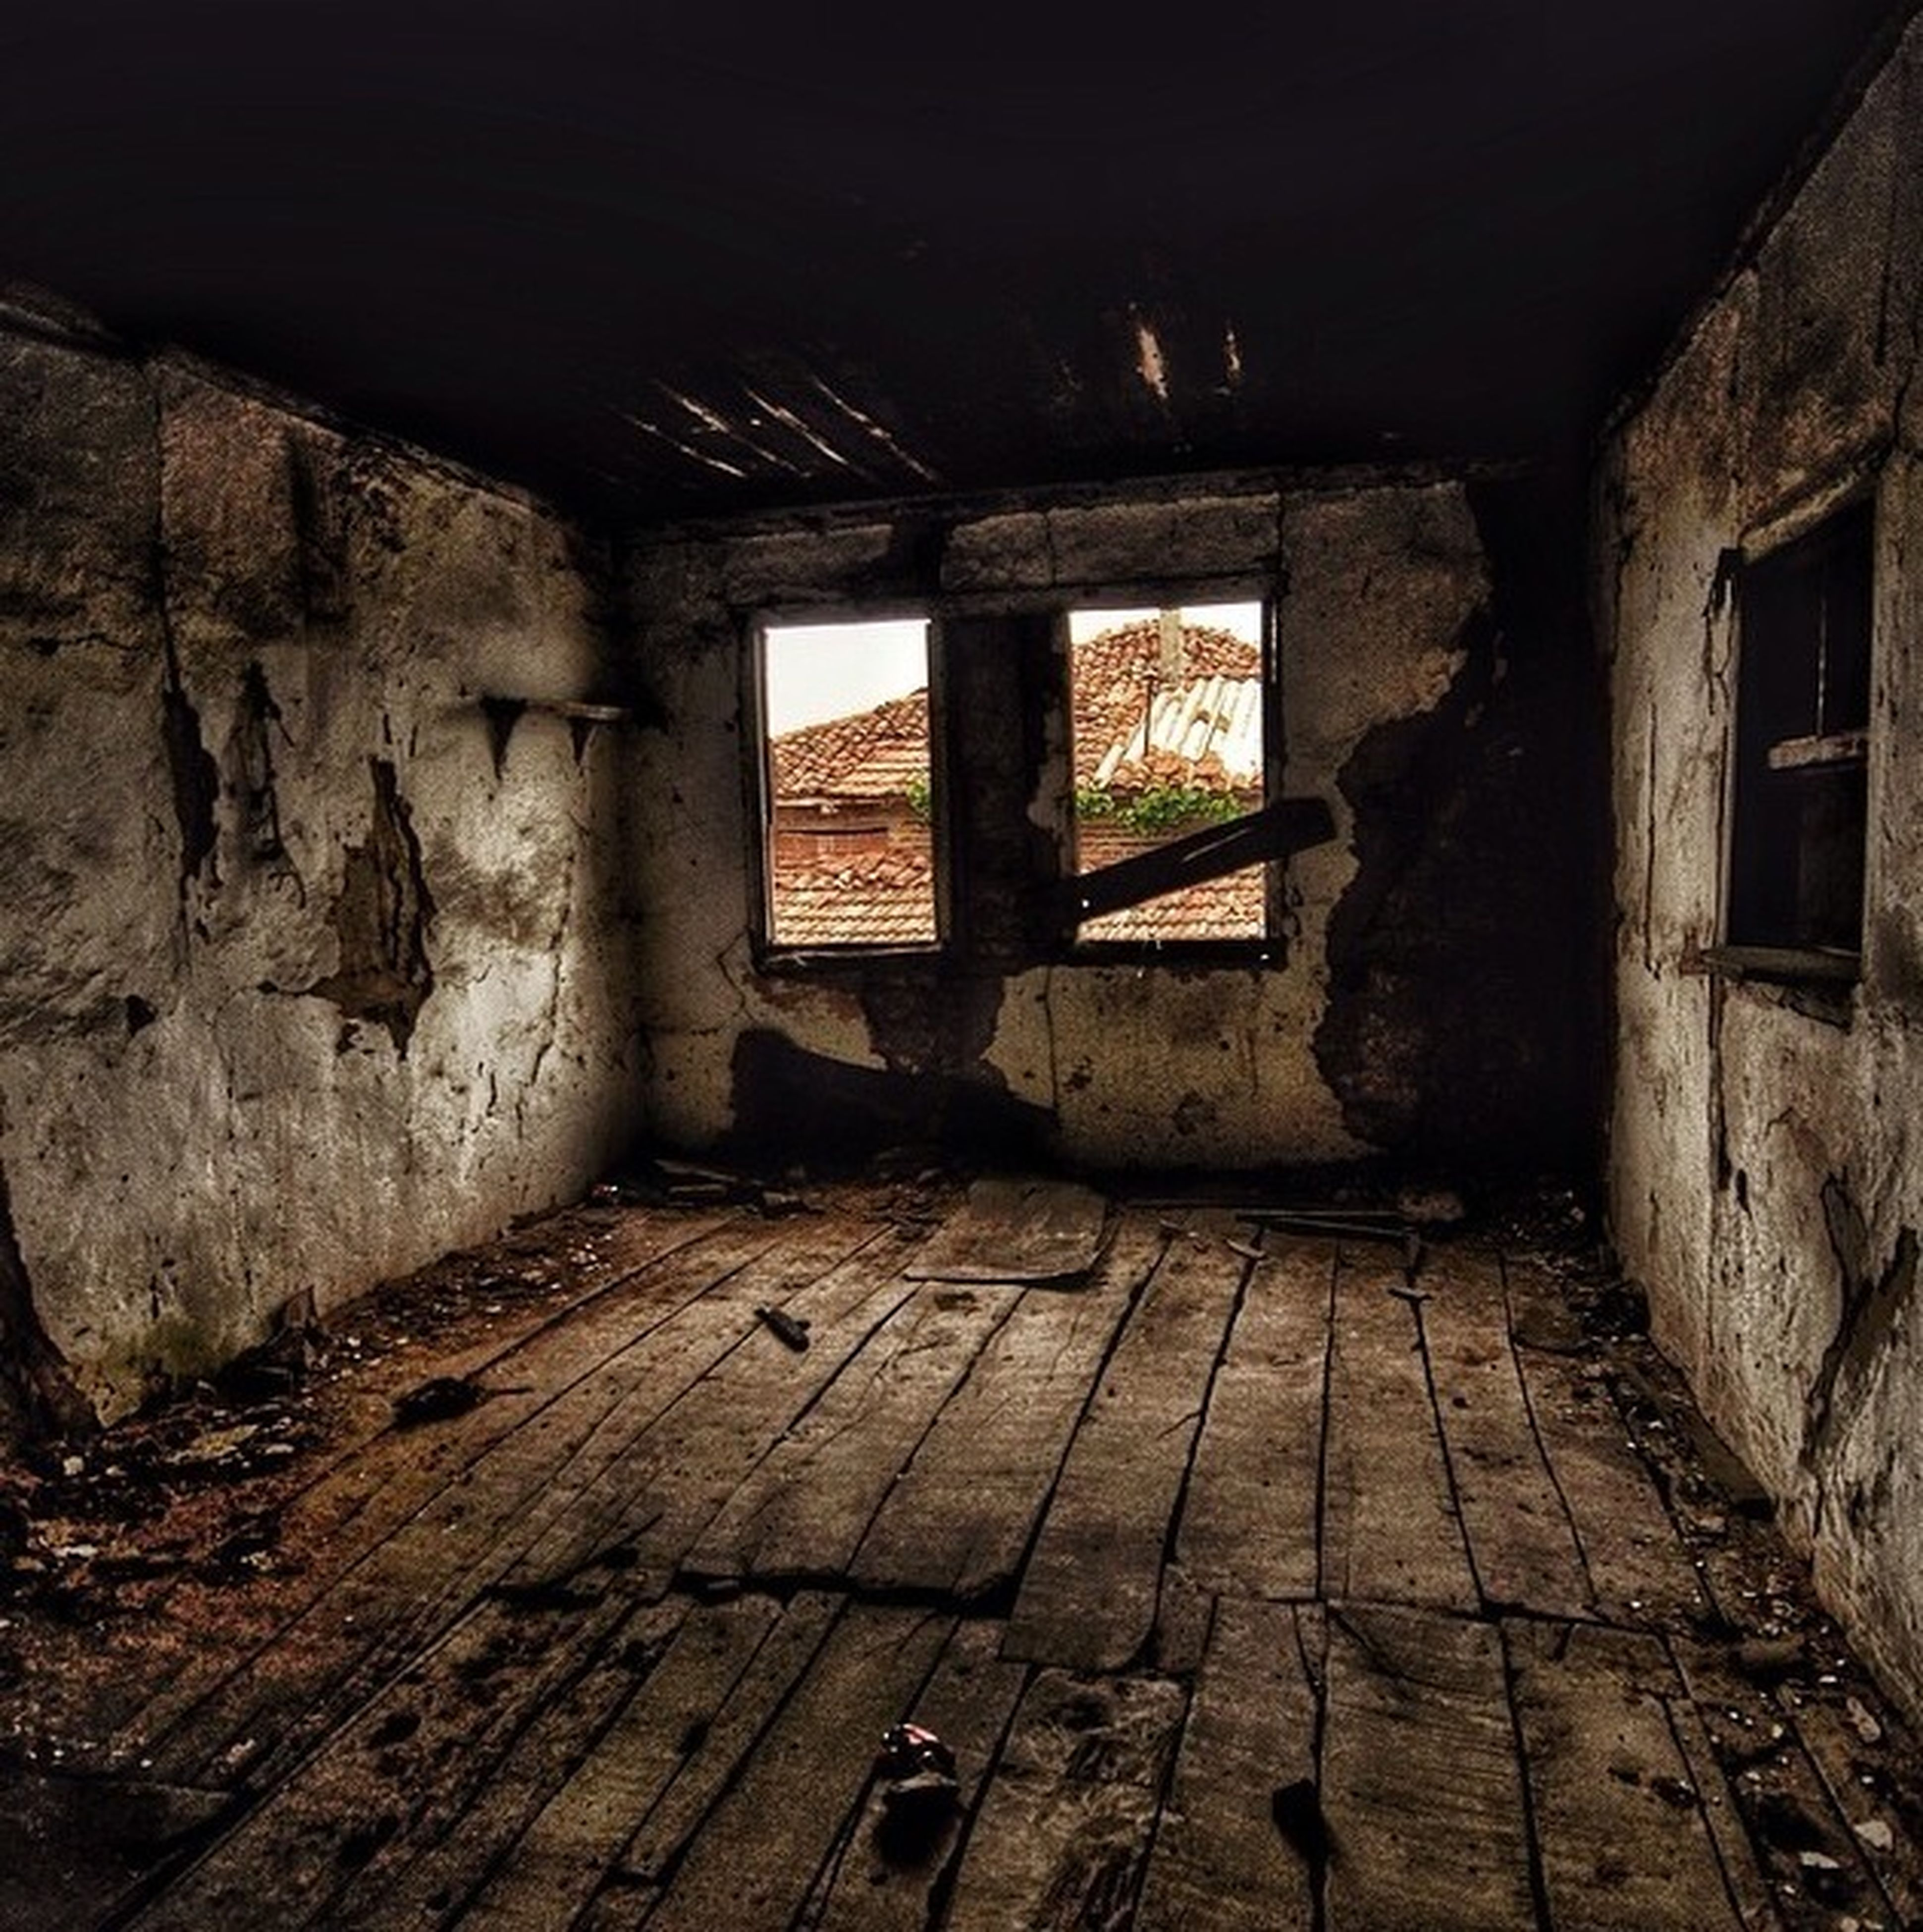 indoors, abandoned, architecture, built structure, obsolete, run-down, deterioration, old, damaged, weathered, interior, ruined, bad condition, window, old ruin, wall - building feature, destruction, house, building, corridor